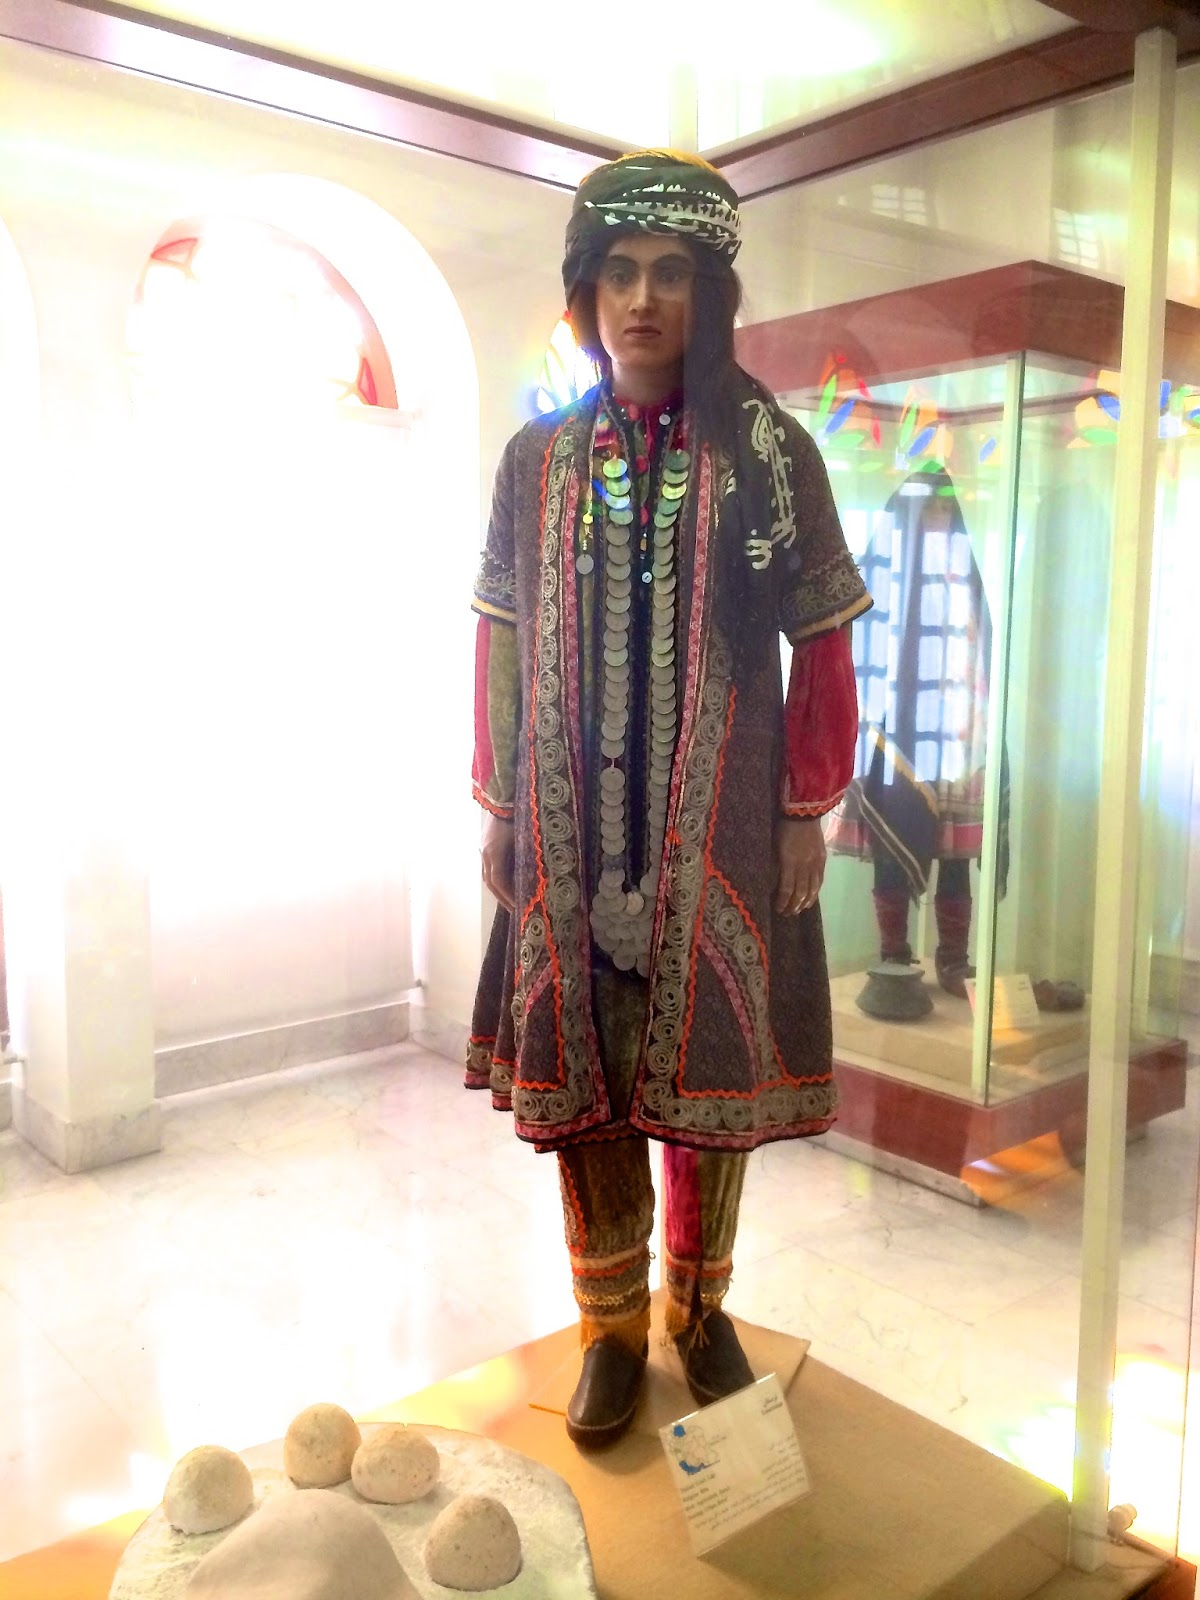 Royal Costume Museum Tehran, Kakh-e Abyaz (Ethnological Museum) at Golestan Palace, Tehran/Iran ...